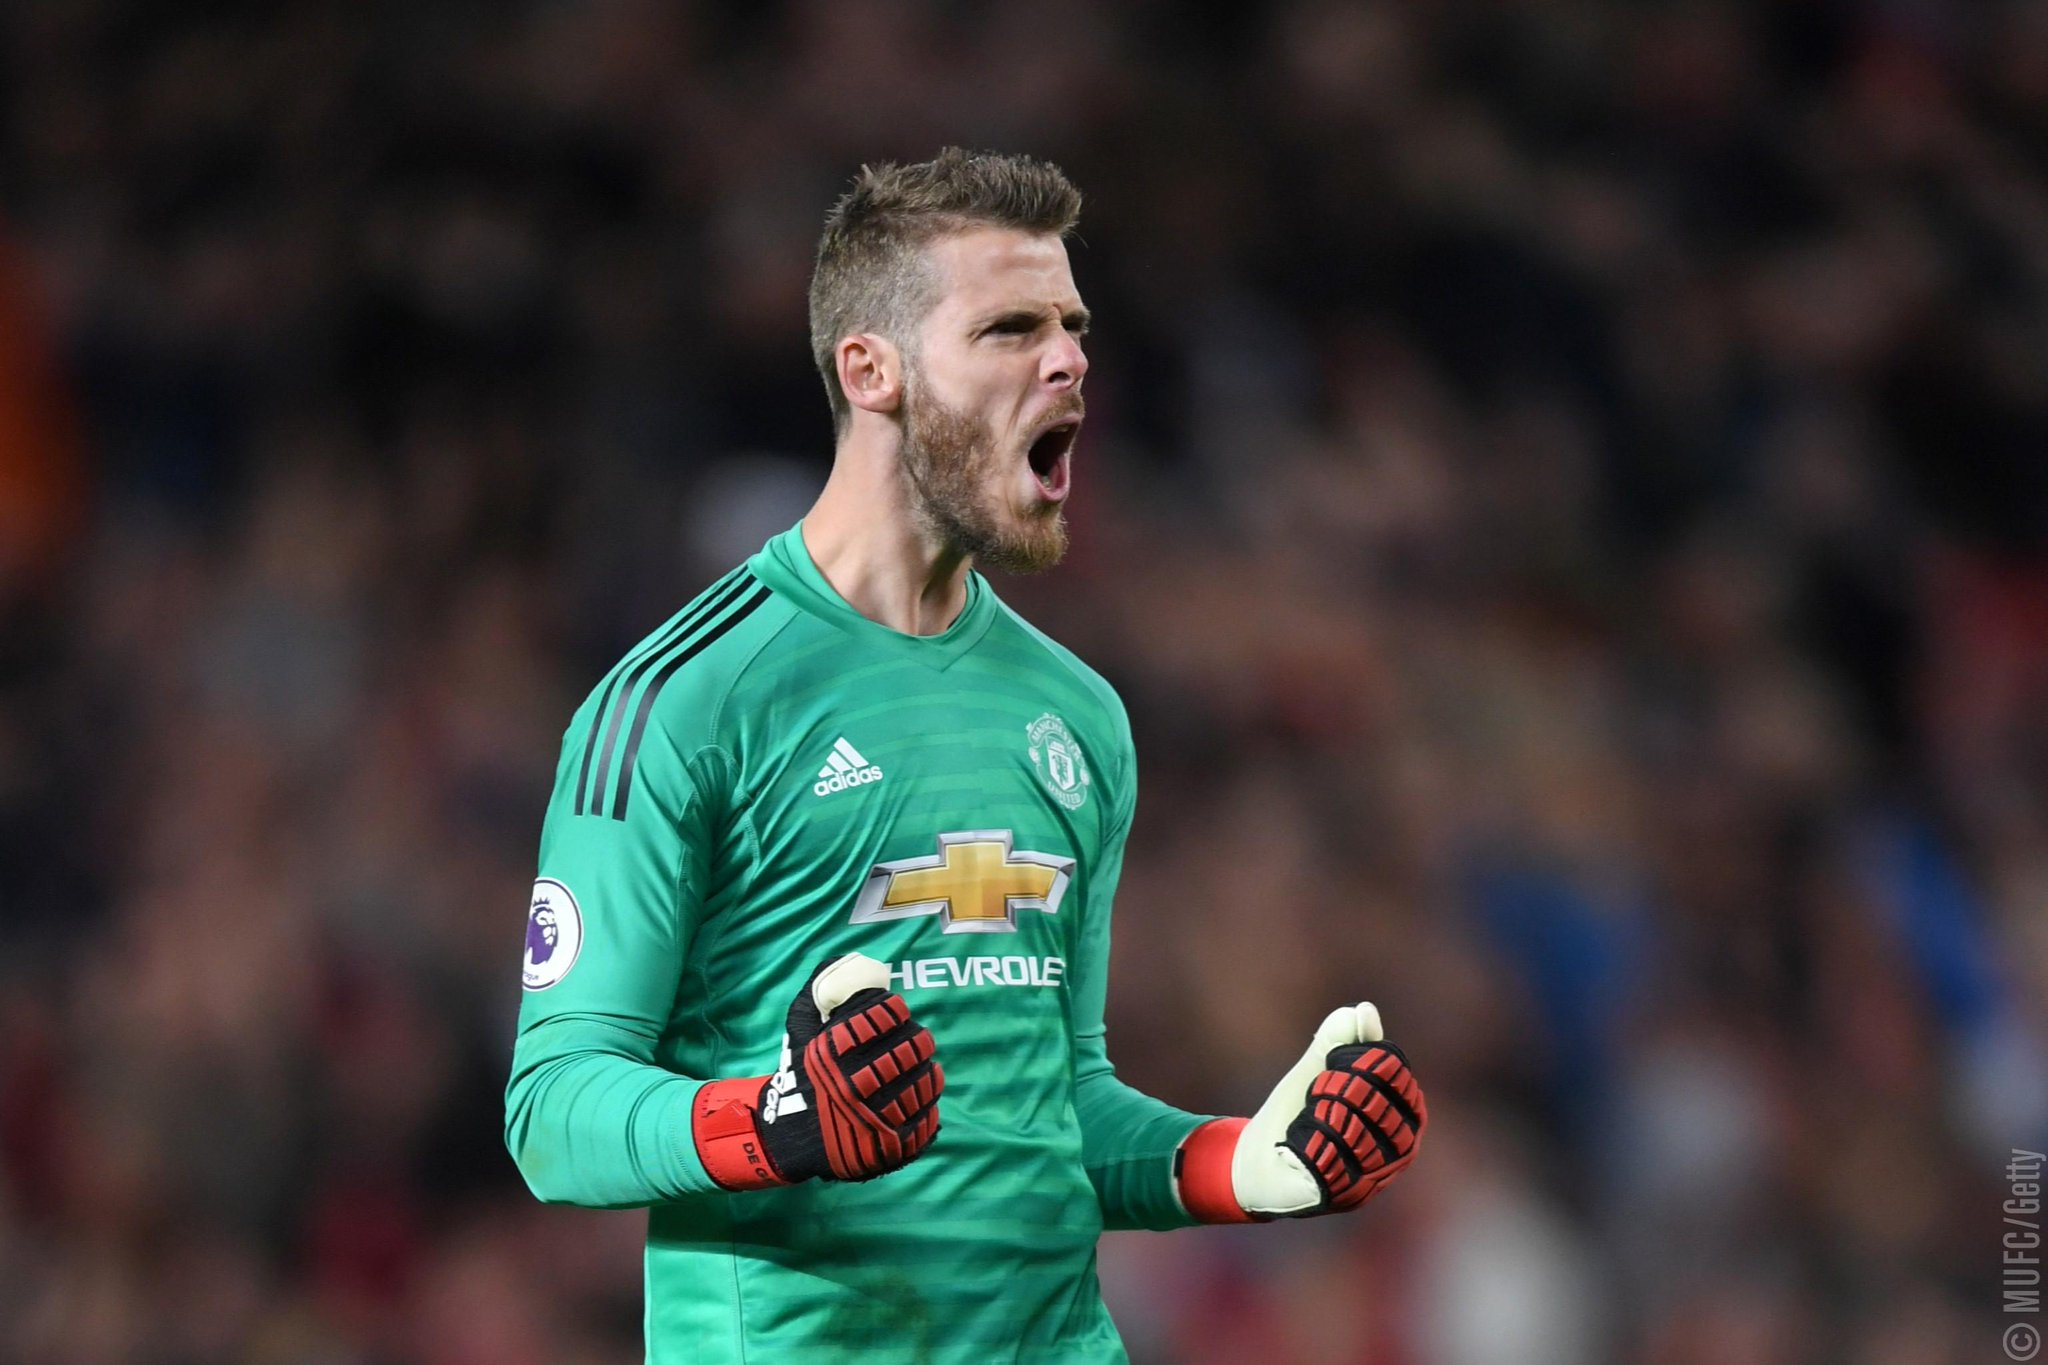 'He likes it here, and we love him.' ♥️  Jose on @D_DeGea: https://t.co/Q9D6NPp4W0 https://t.co/wkkDrFaAru